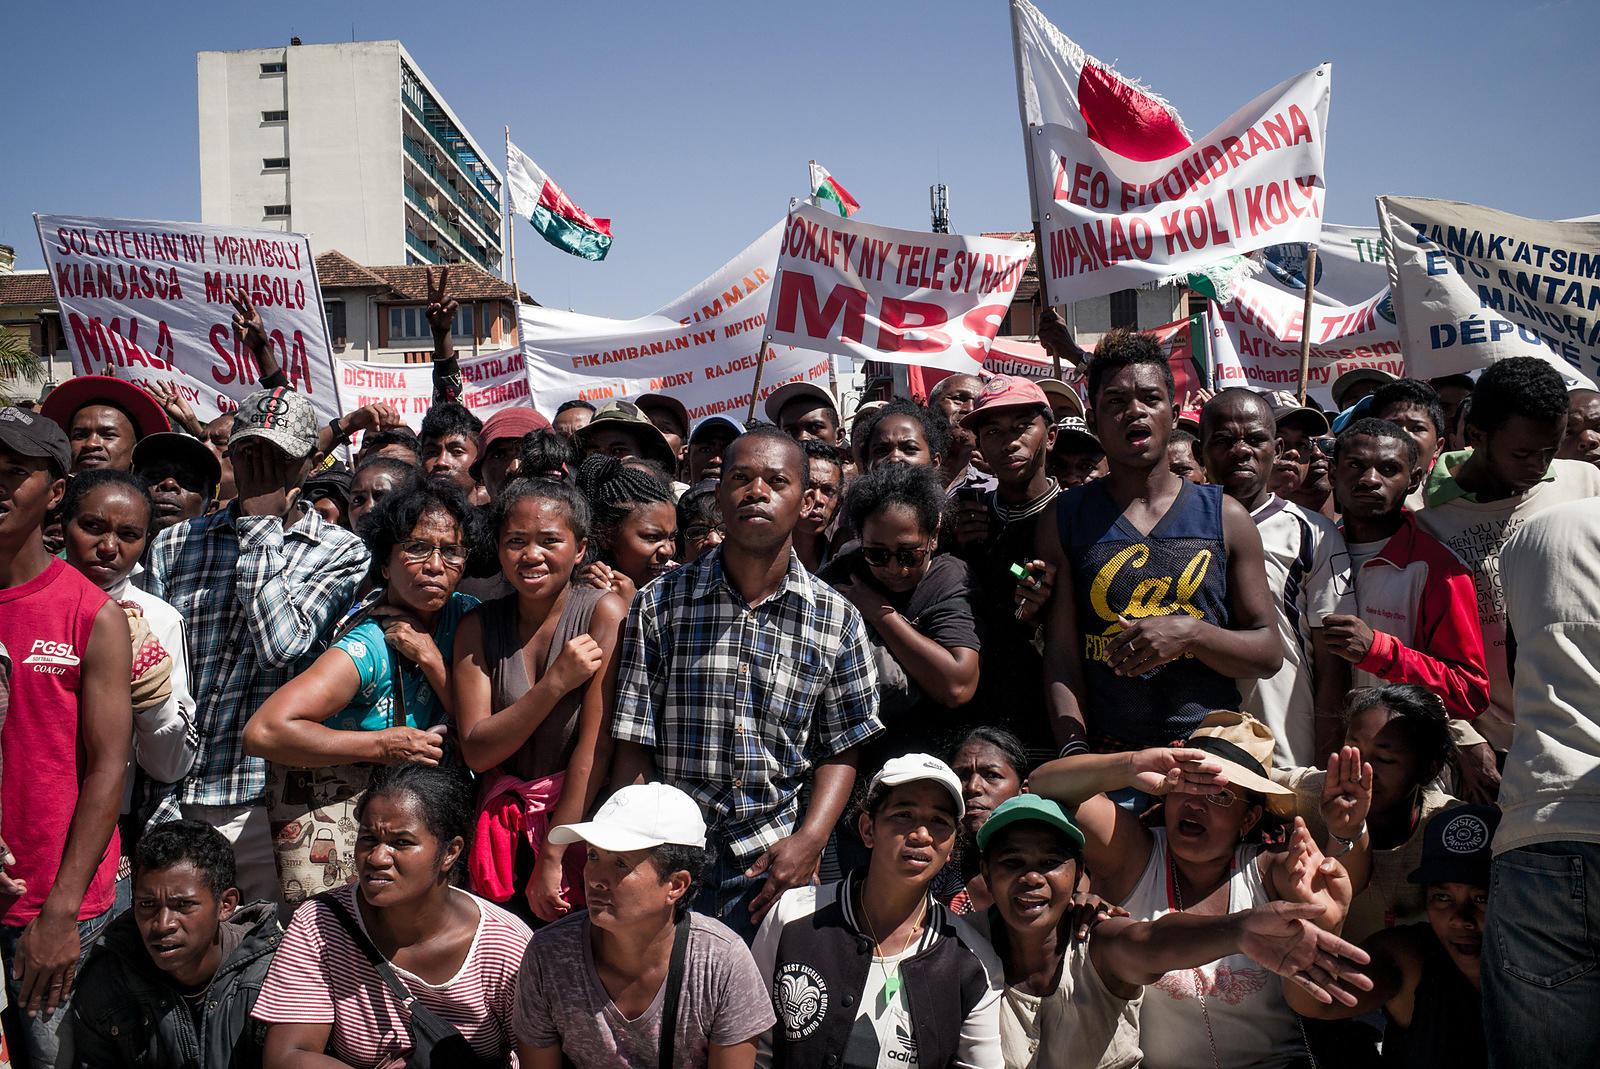 Opposition supporters gathered in the square on May 13 to listen to the speeches in Antananarivo on April 28, 2018.